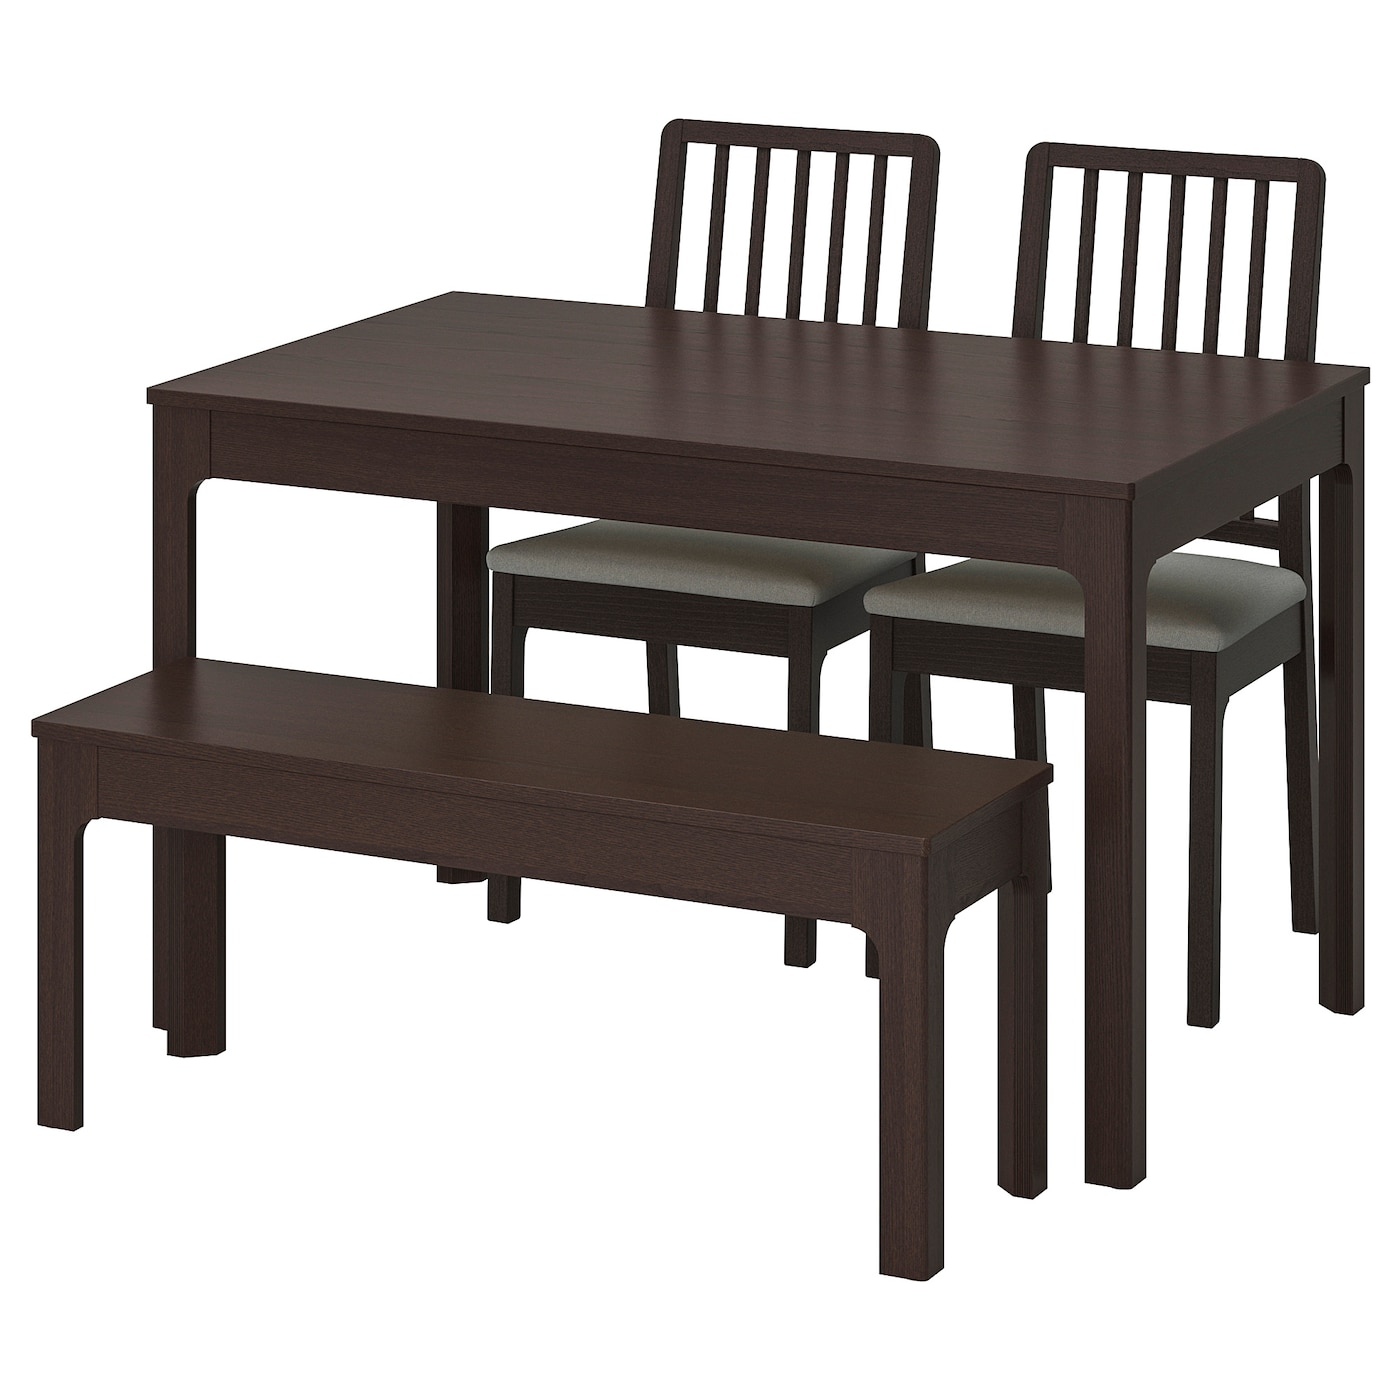 IKEA EKEDALEN/EKEDALEN table with 2 chairs and bench